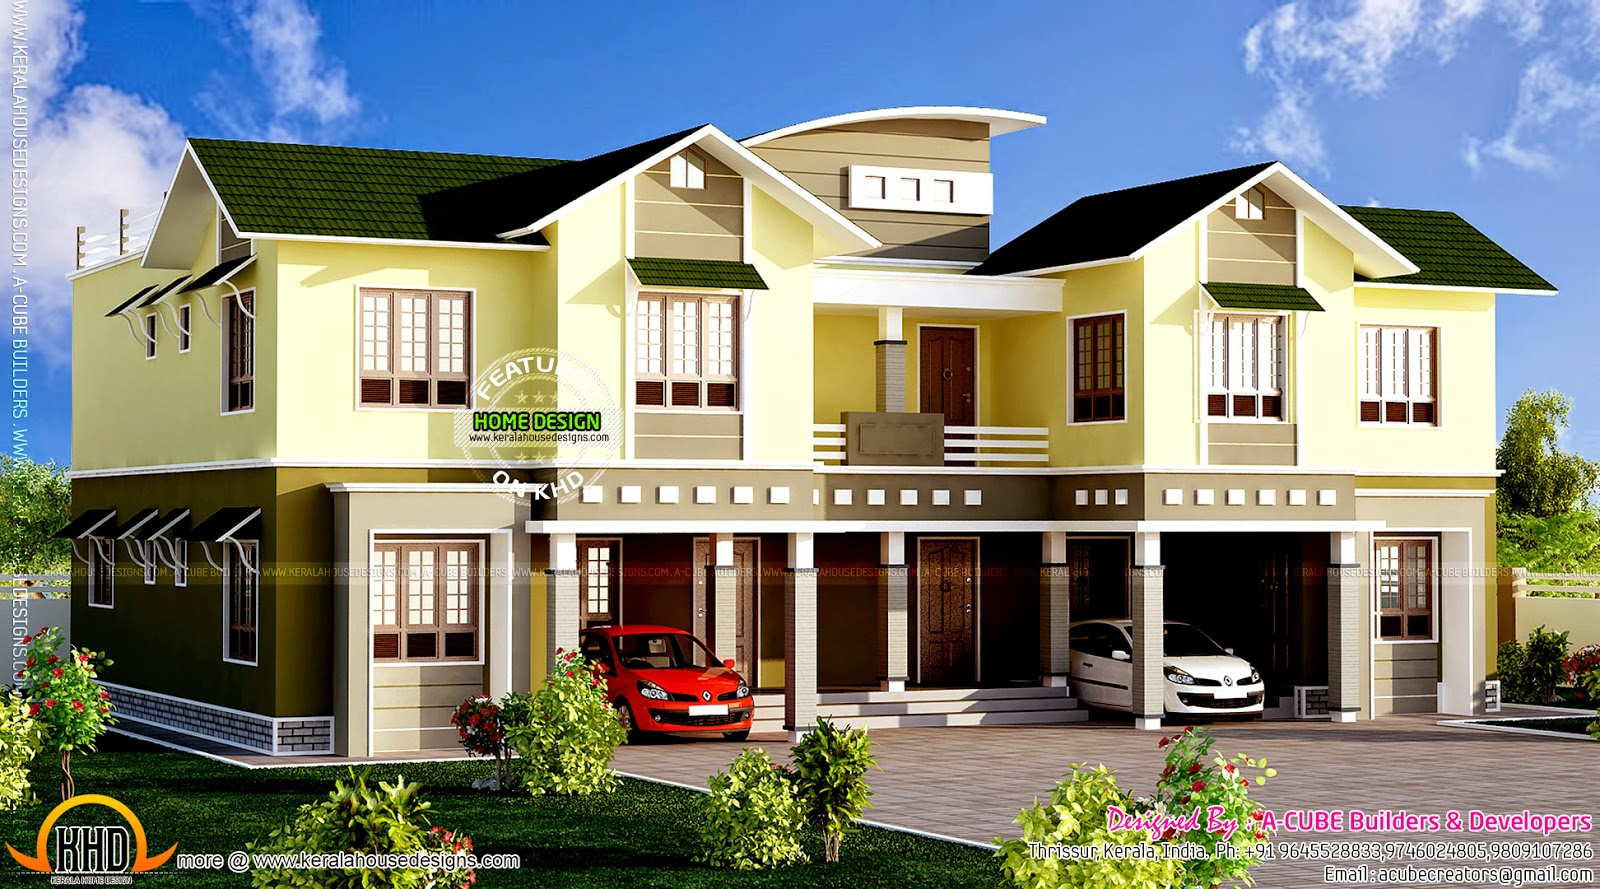 Luxury duplex home kerala home design and floor plans for Duplex house models